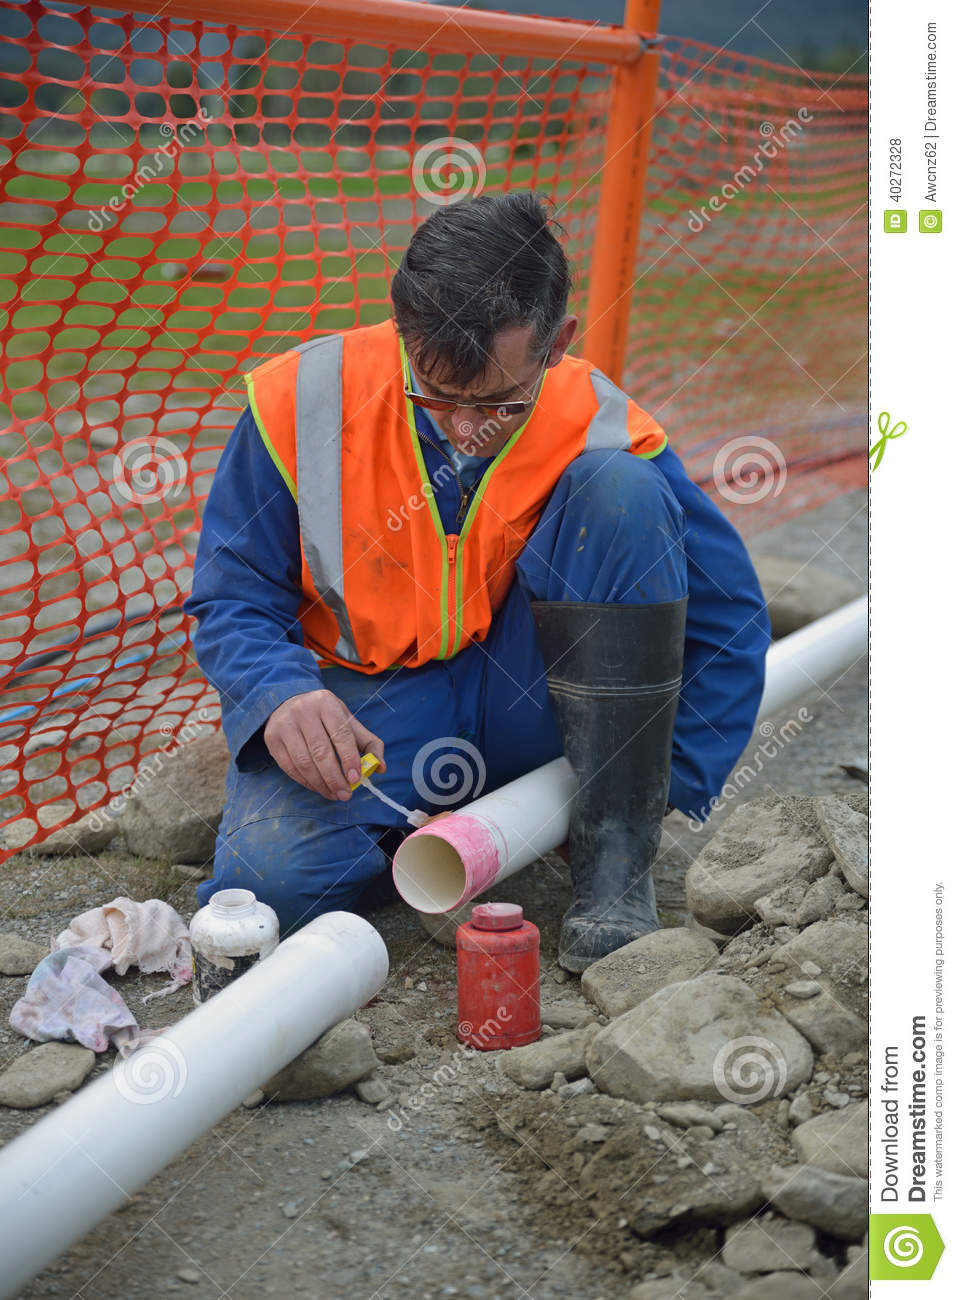 Plumber lays pipe for new client